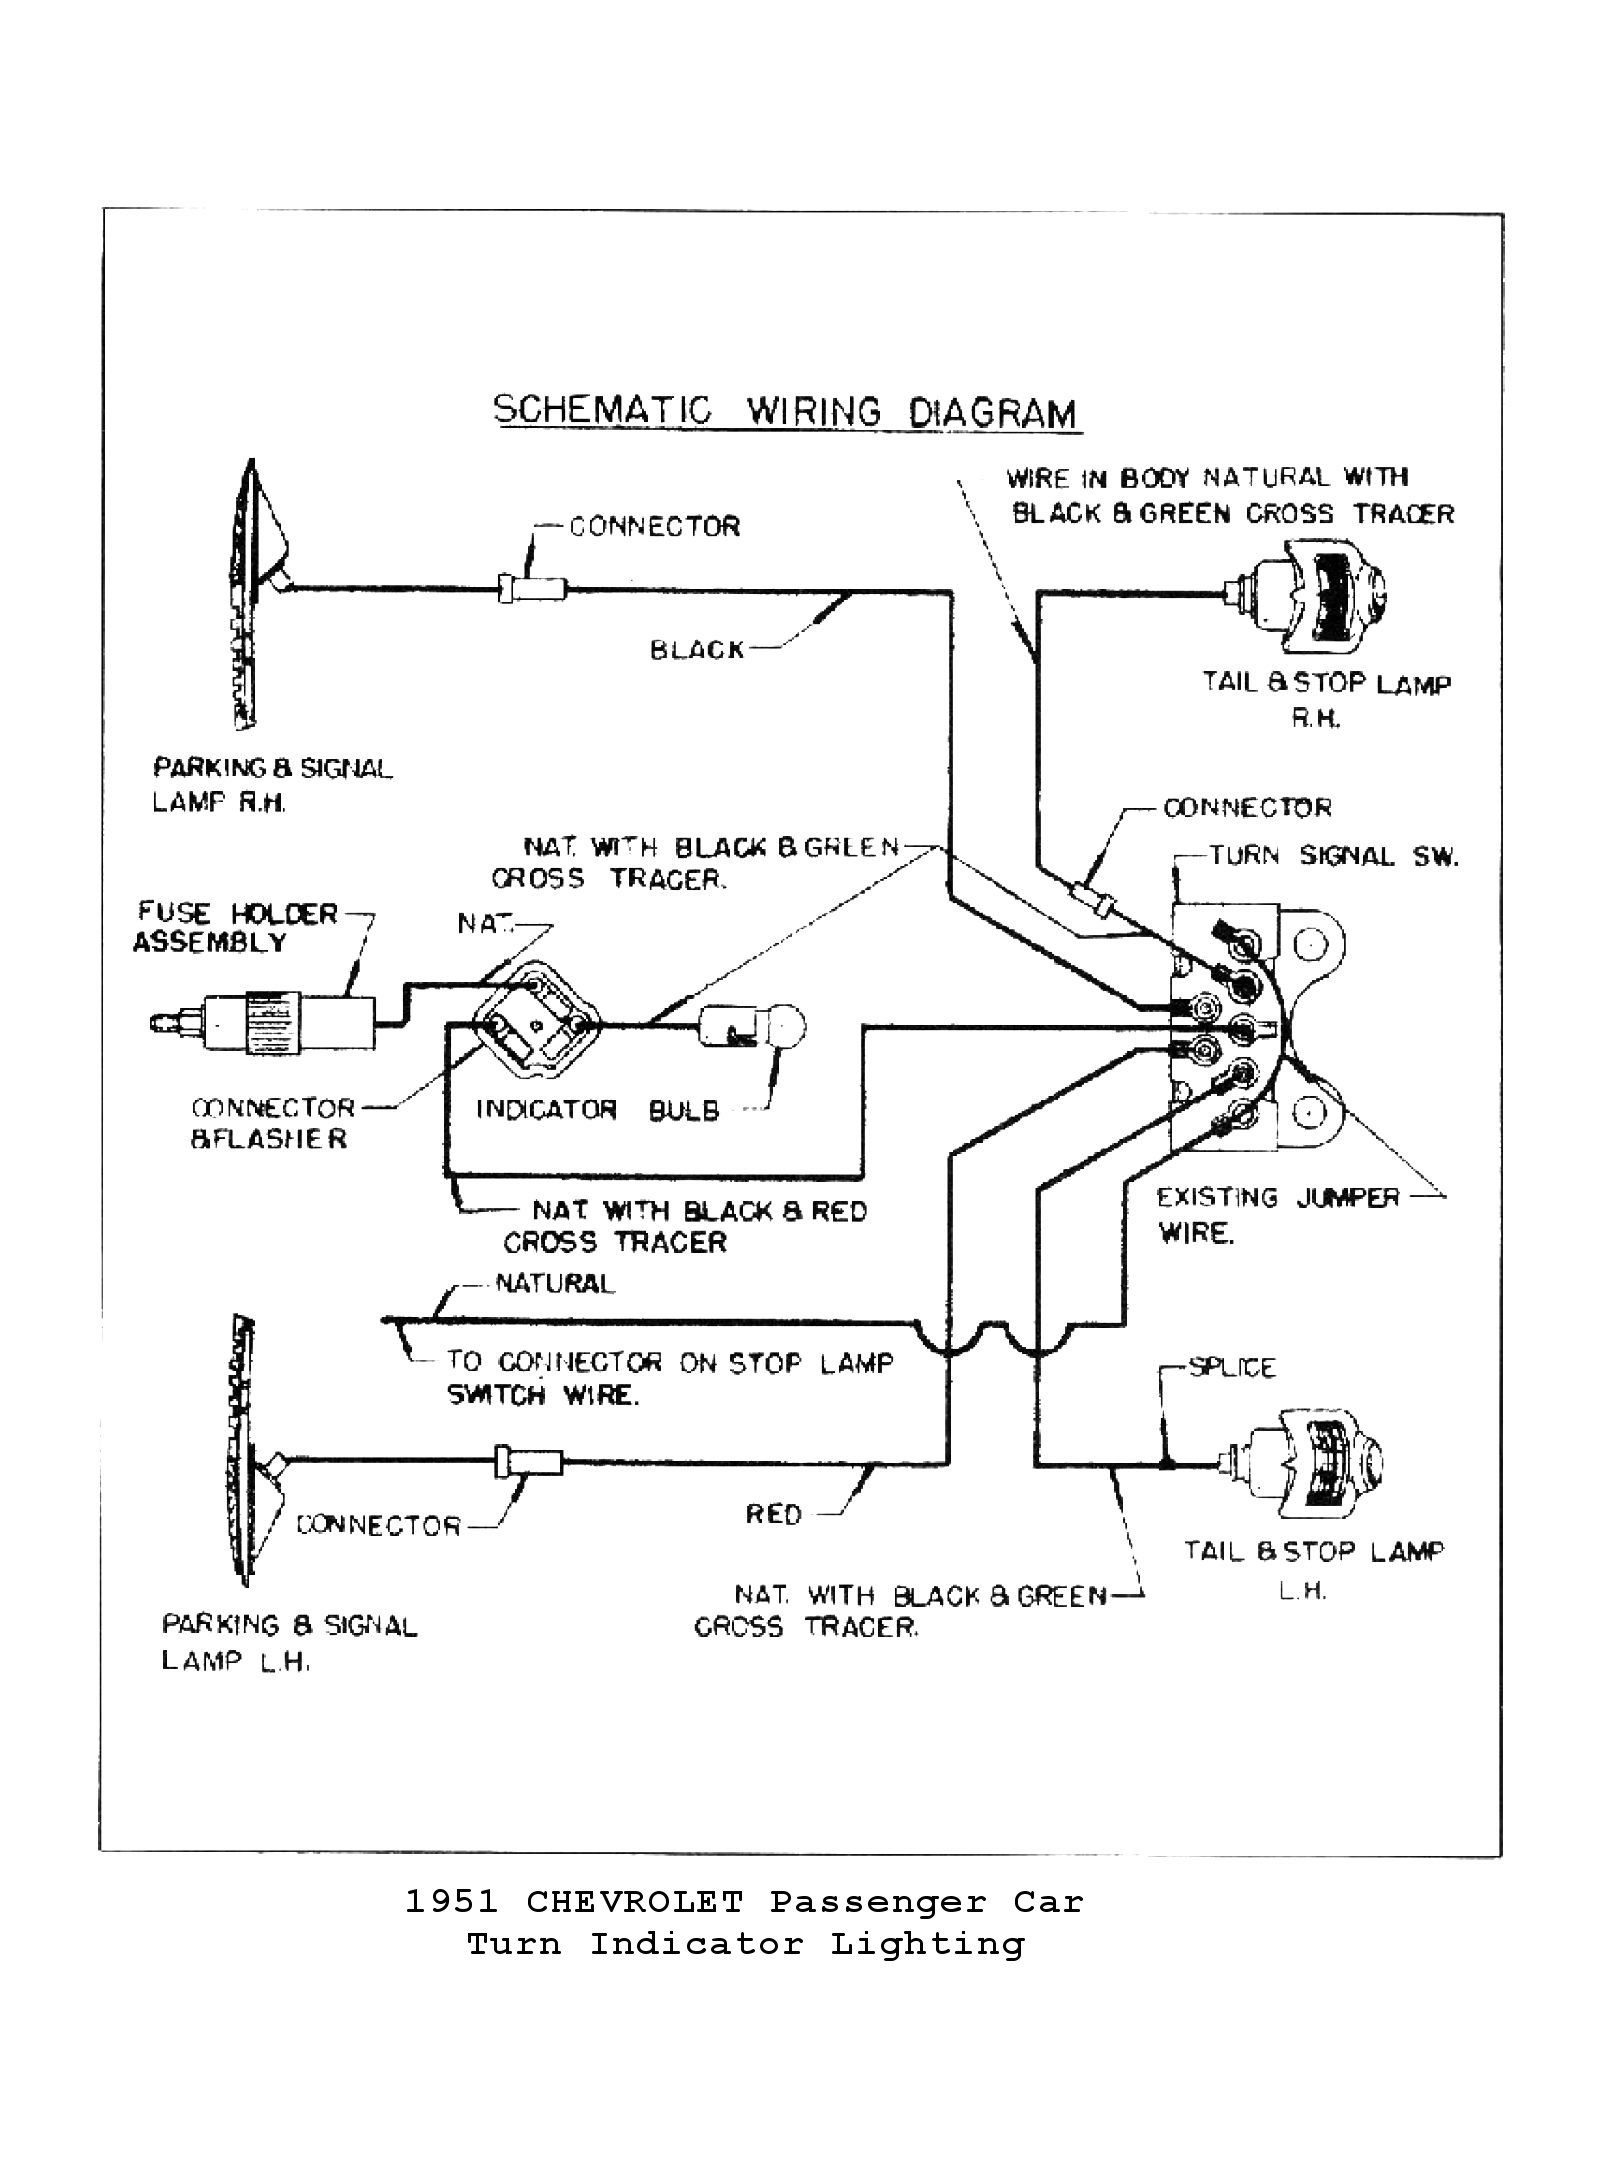 Signalstat Diagram as well W likewise Turnsignals additionally Car additionally Prdp. on 1953 chevy truck wiring diagram